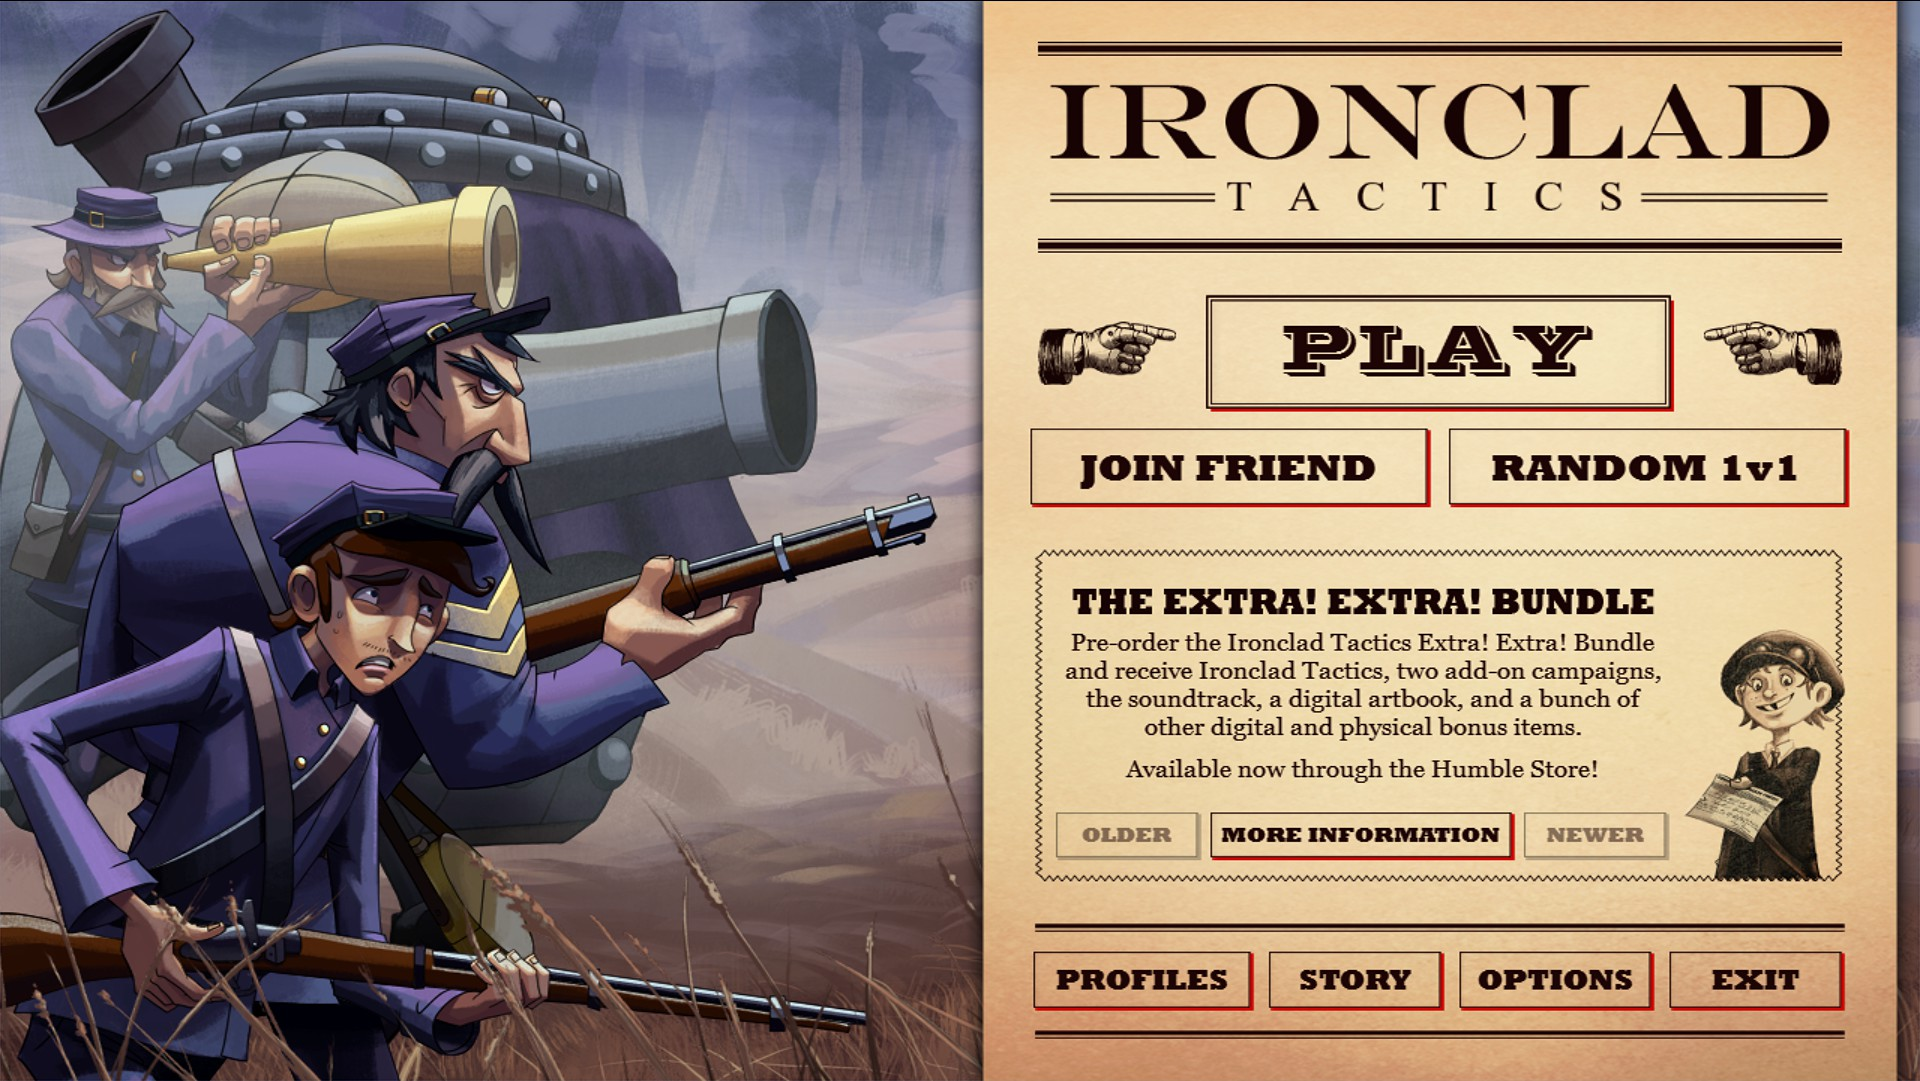 Livestream: Ironclad Tactics – Come See Us Wage Civil War With Robots and Cards